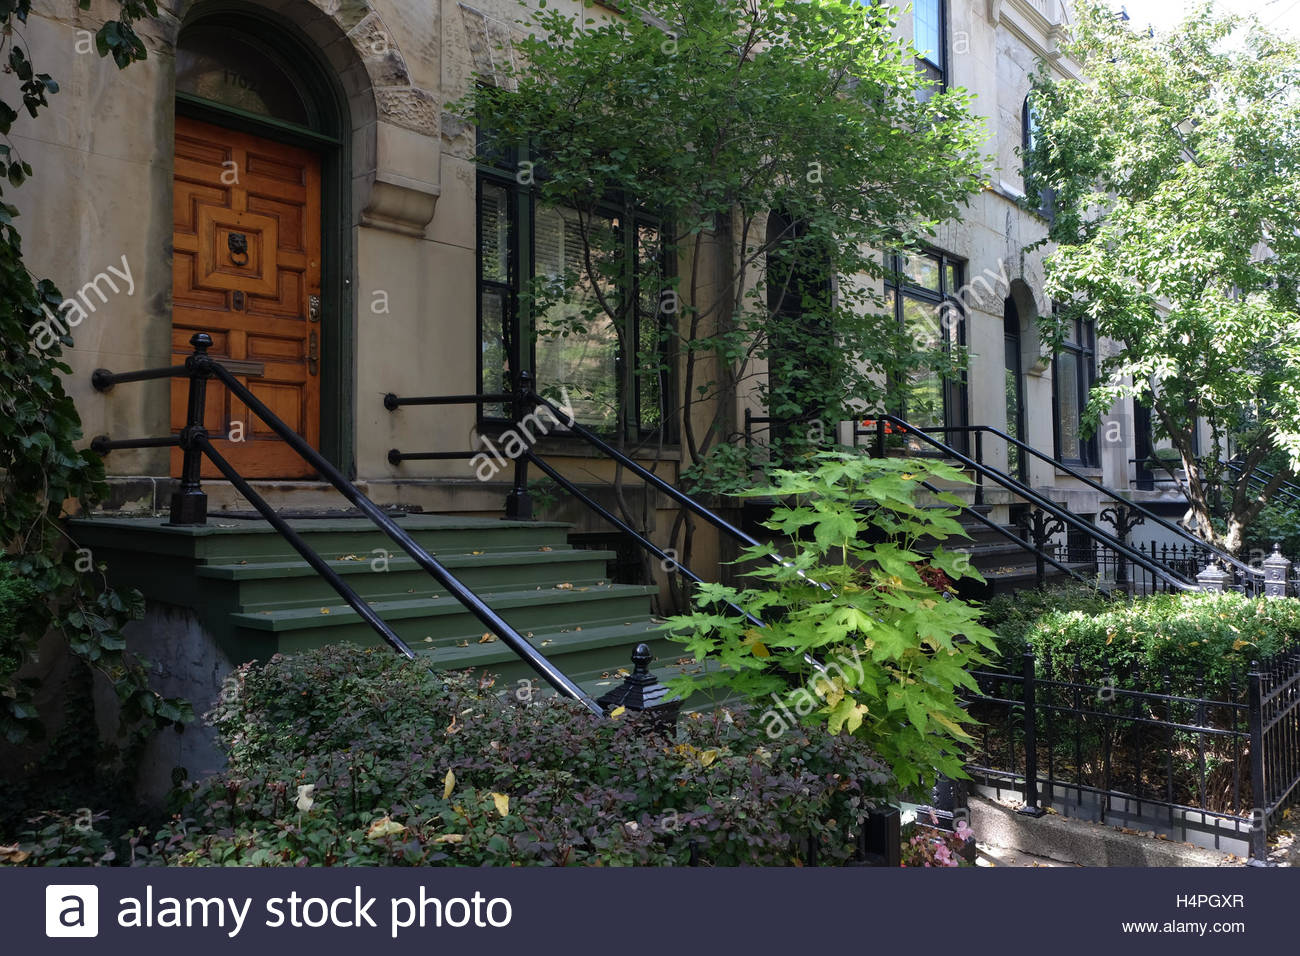 An upscale rowhouse in Chicago's historic Old Town neighborhood along North Crilly Court. - Stock Image